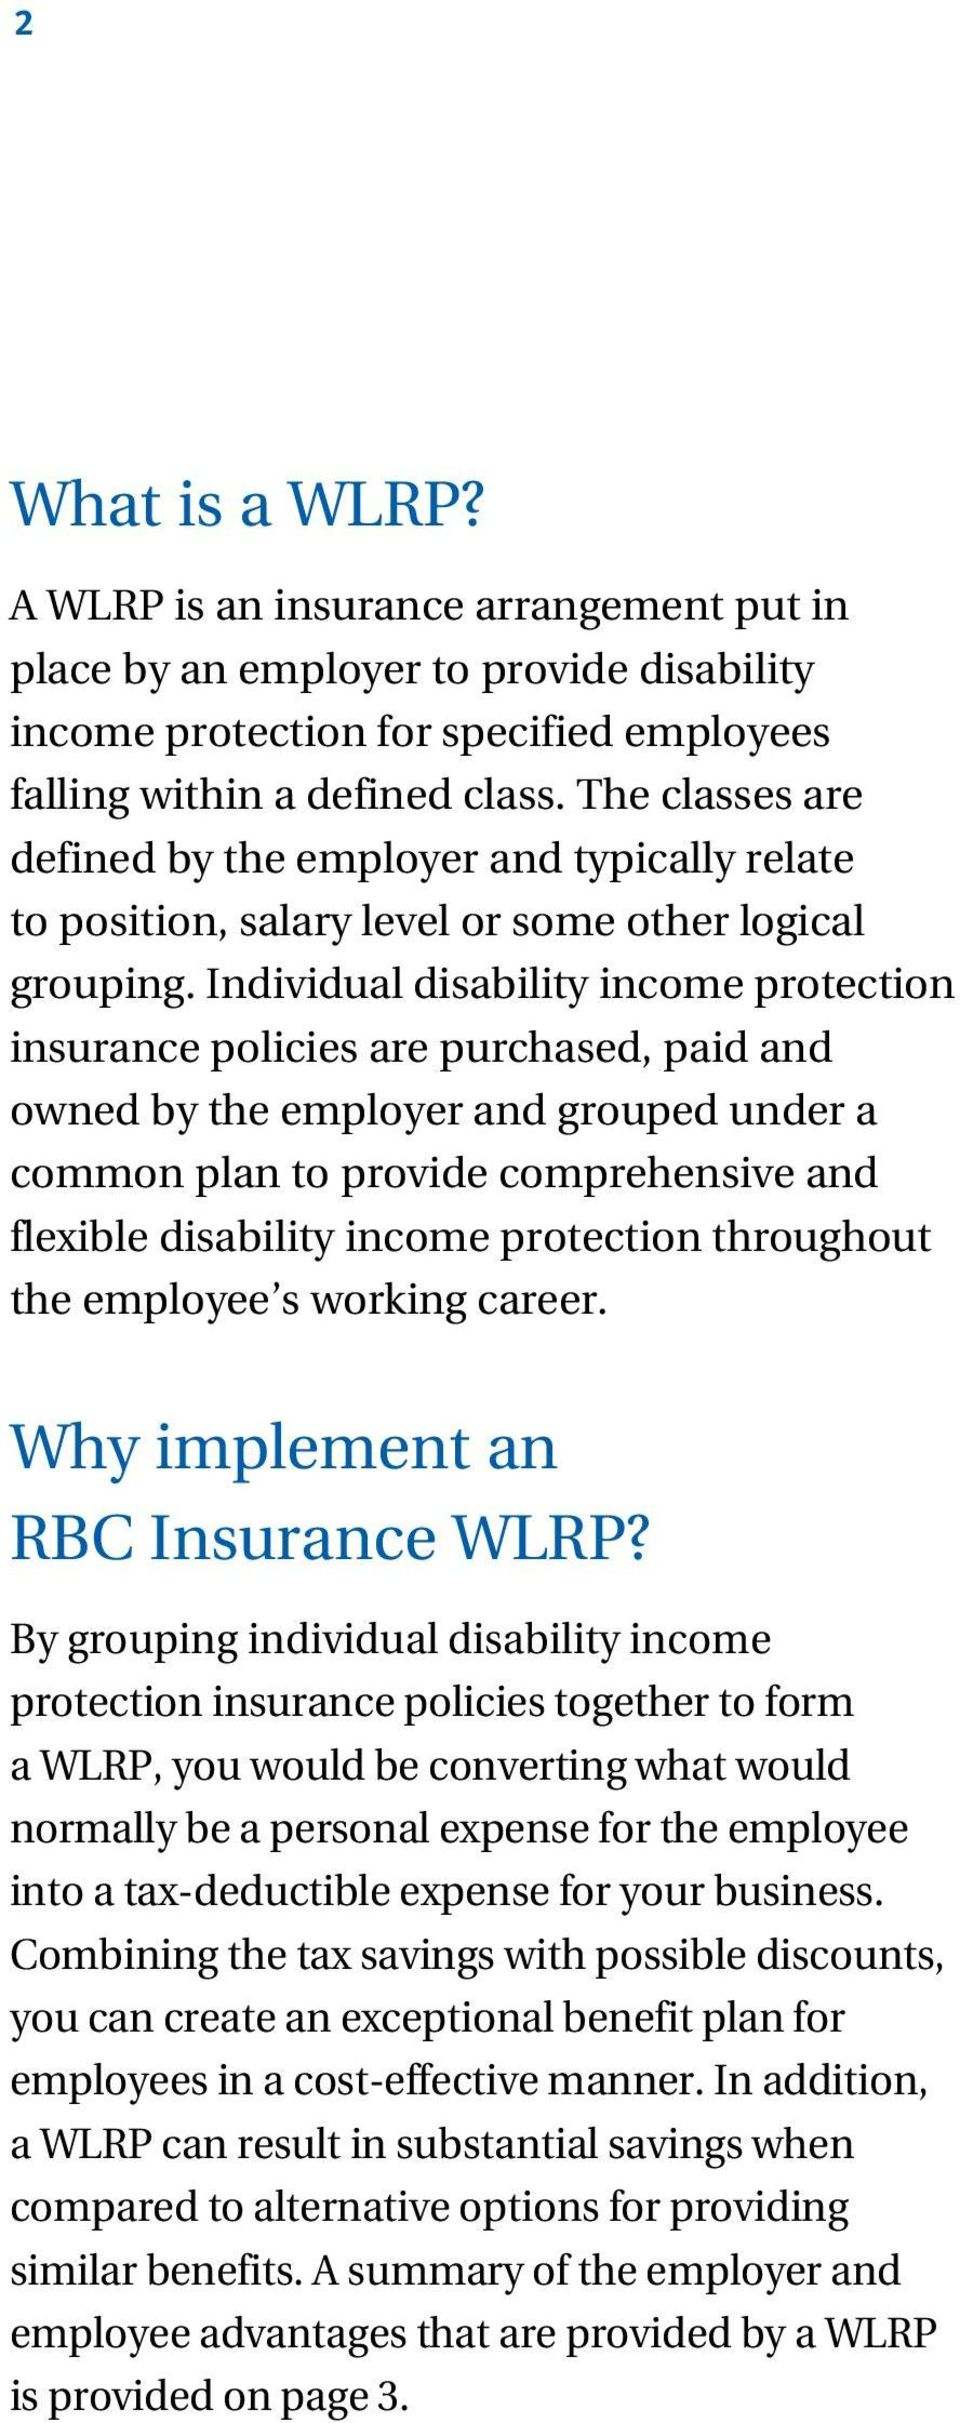 Individual disability income protection insurance policies are purchased, paid and owned by the employer and grouped under a common plan to provide comprehensive and flexible disability income